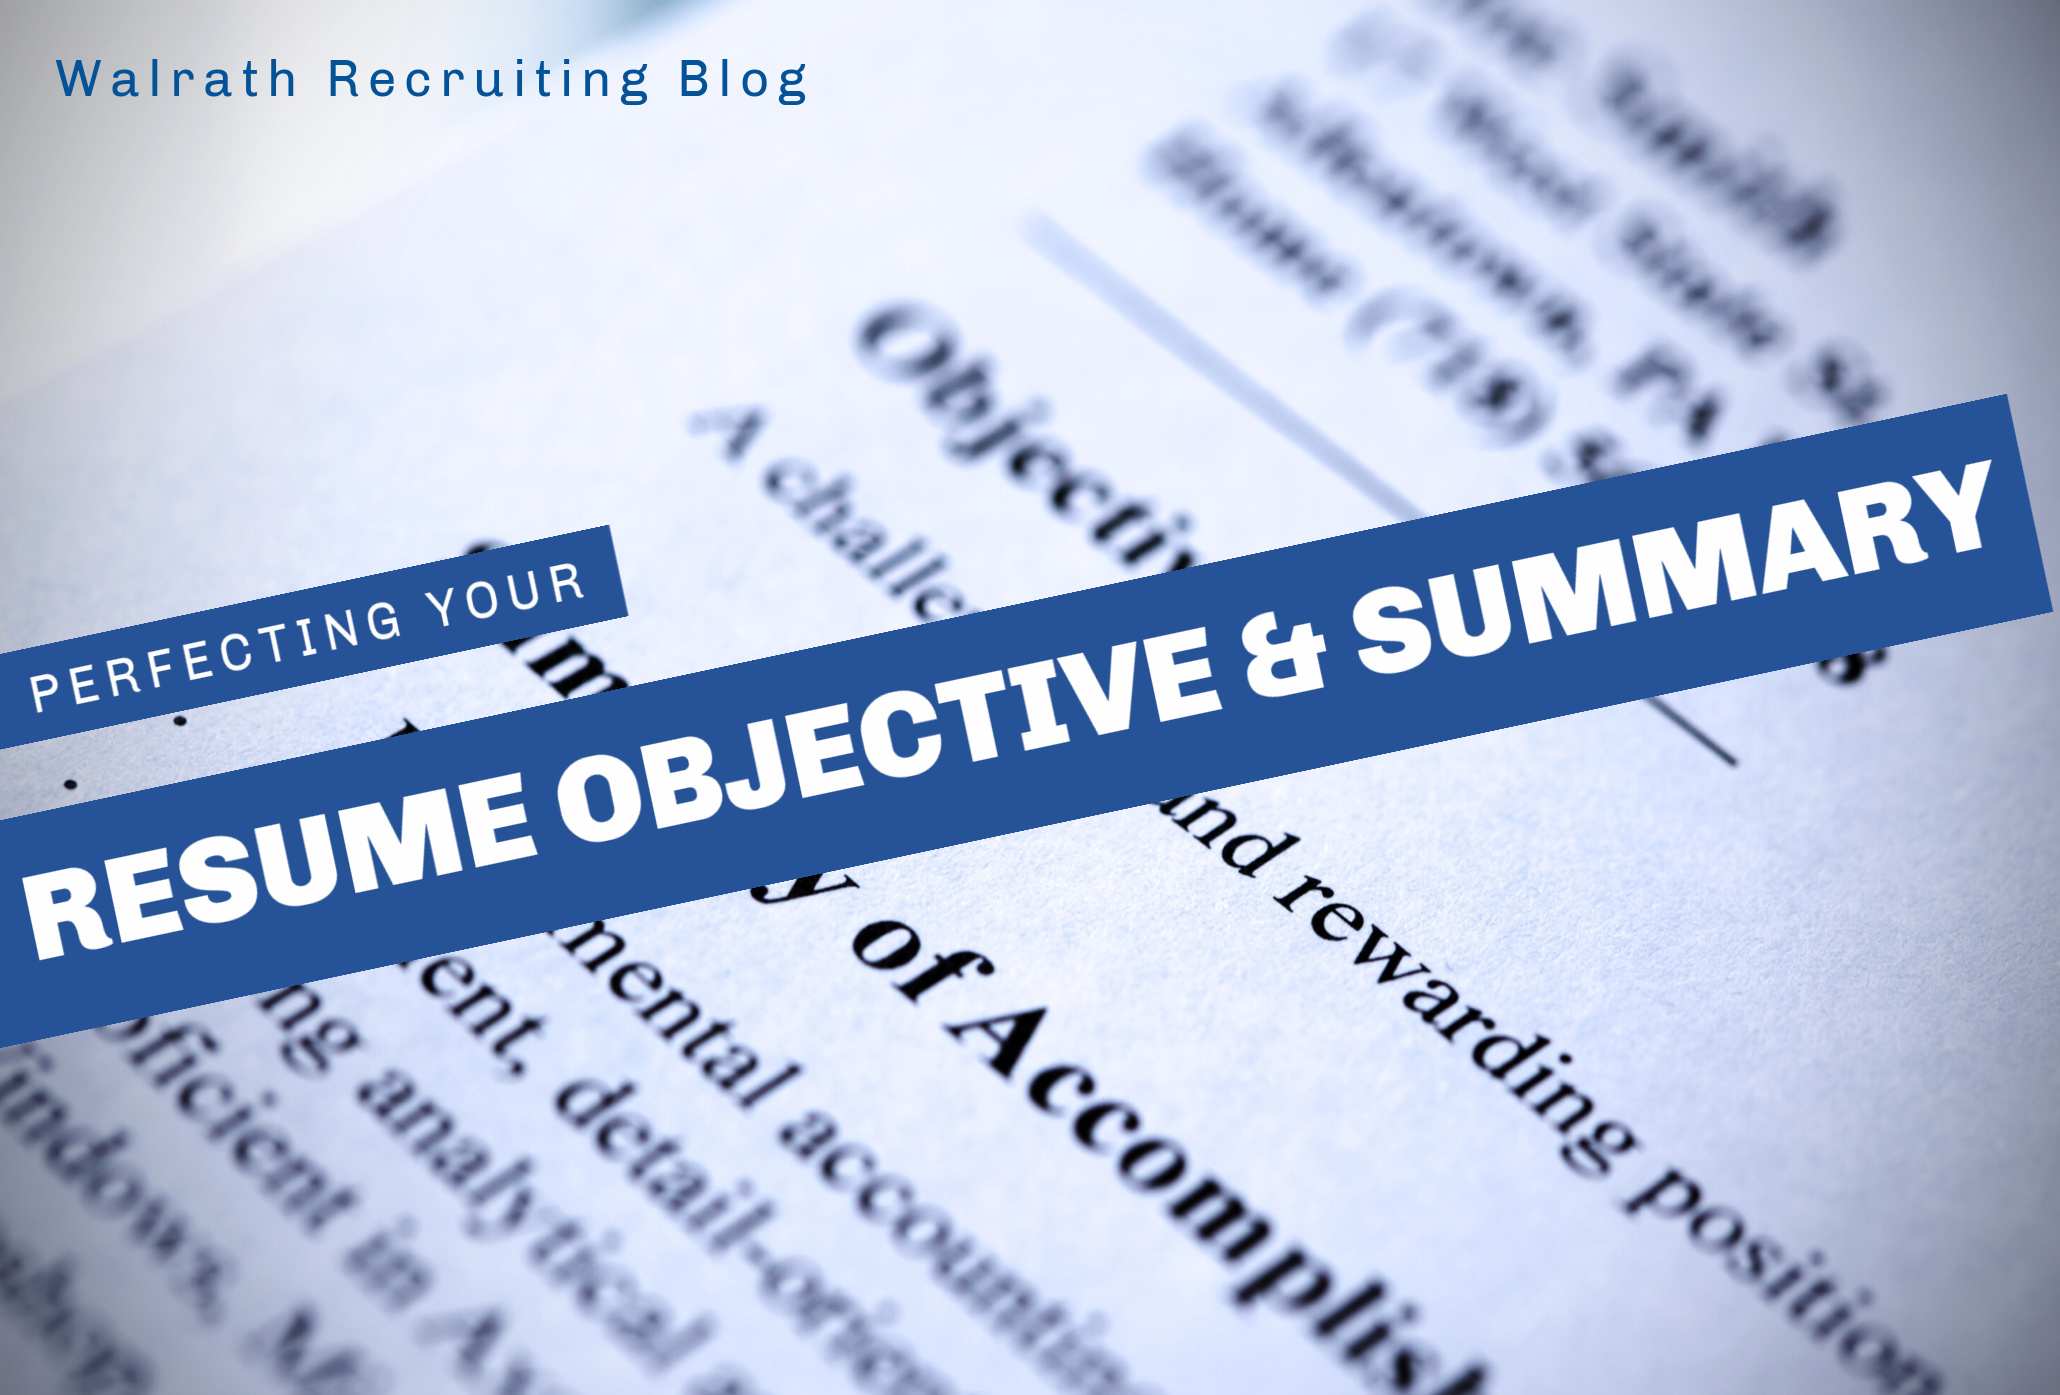 Resume Objectives are the first thing a reader see. Make yours stand out!